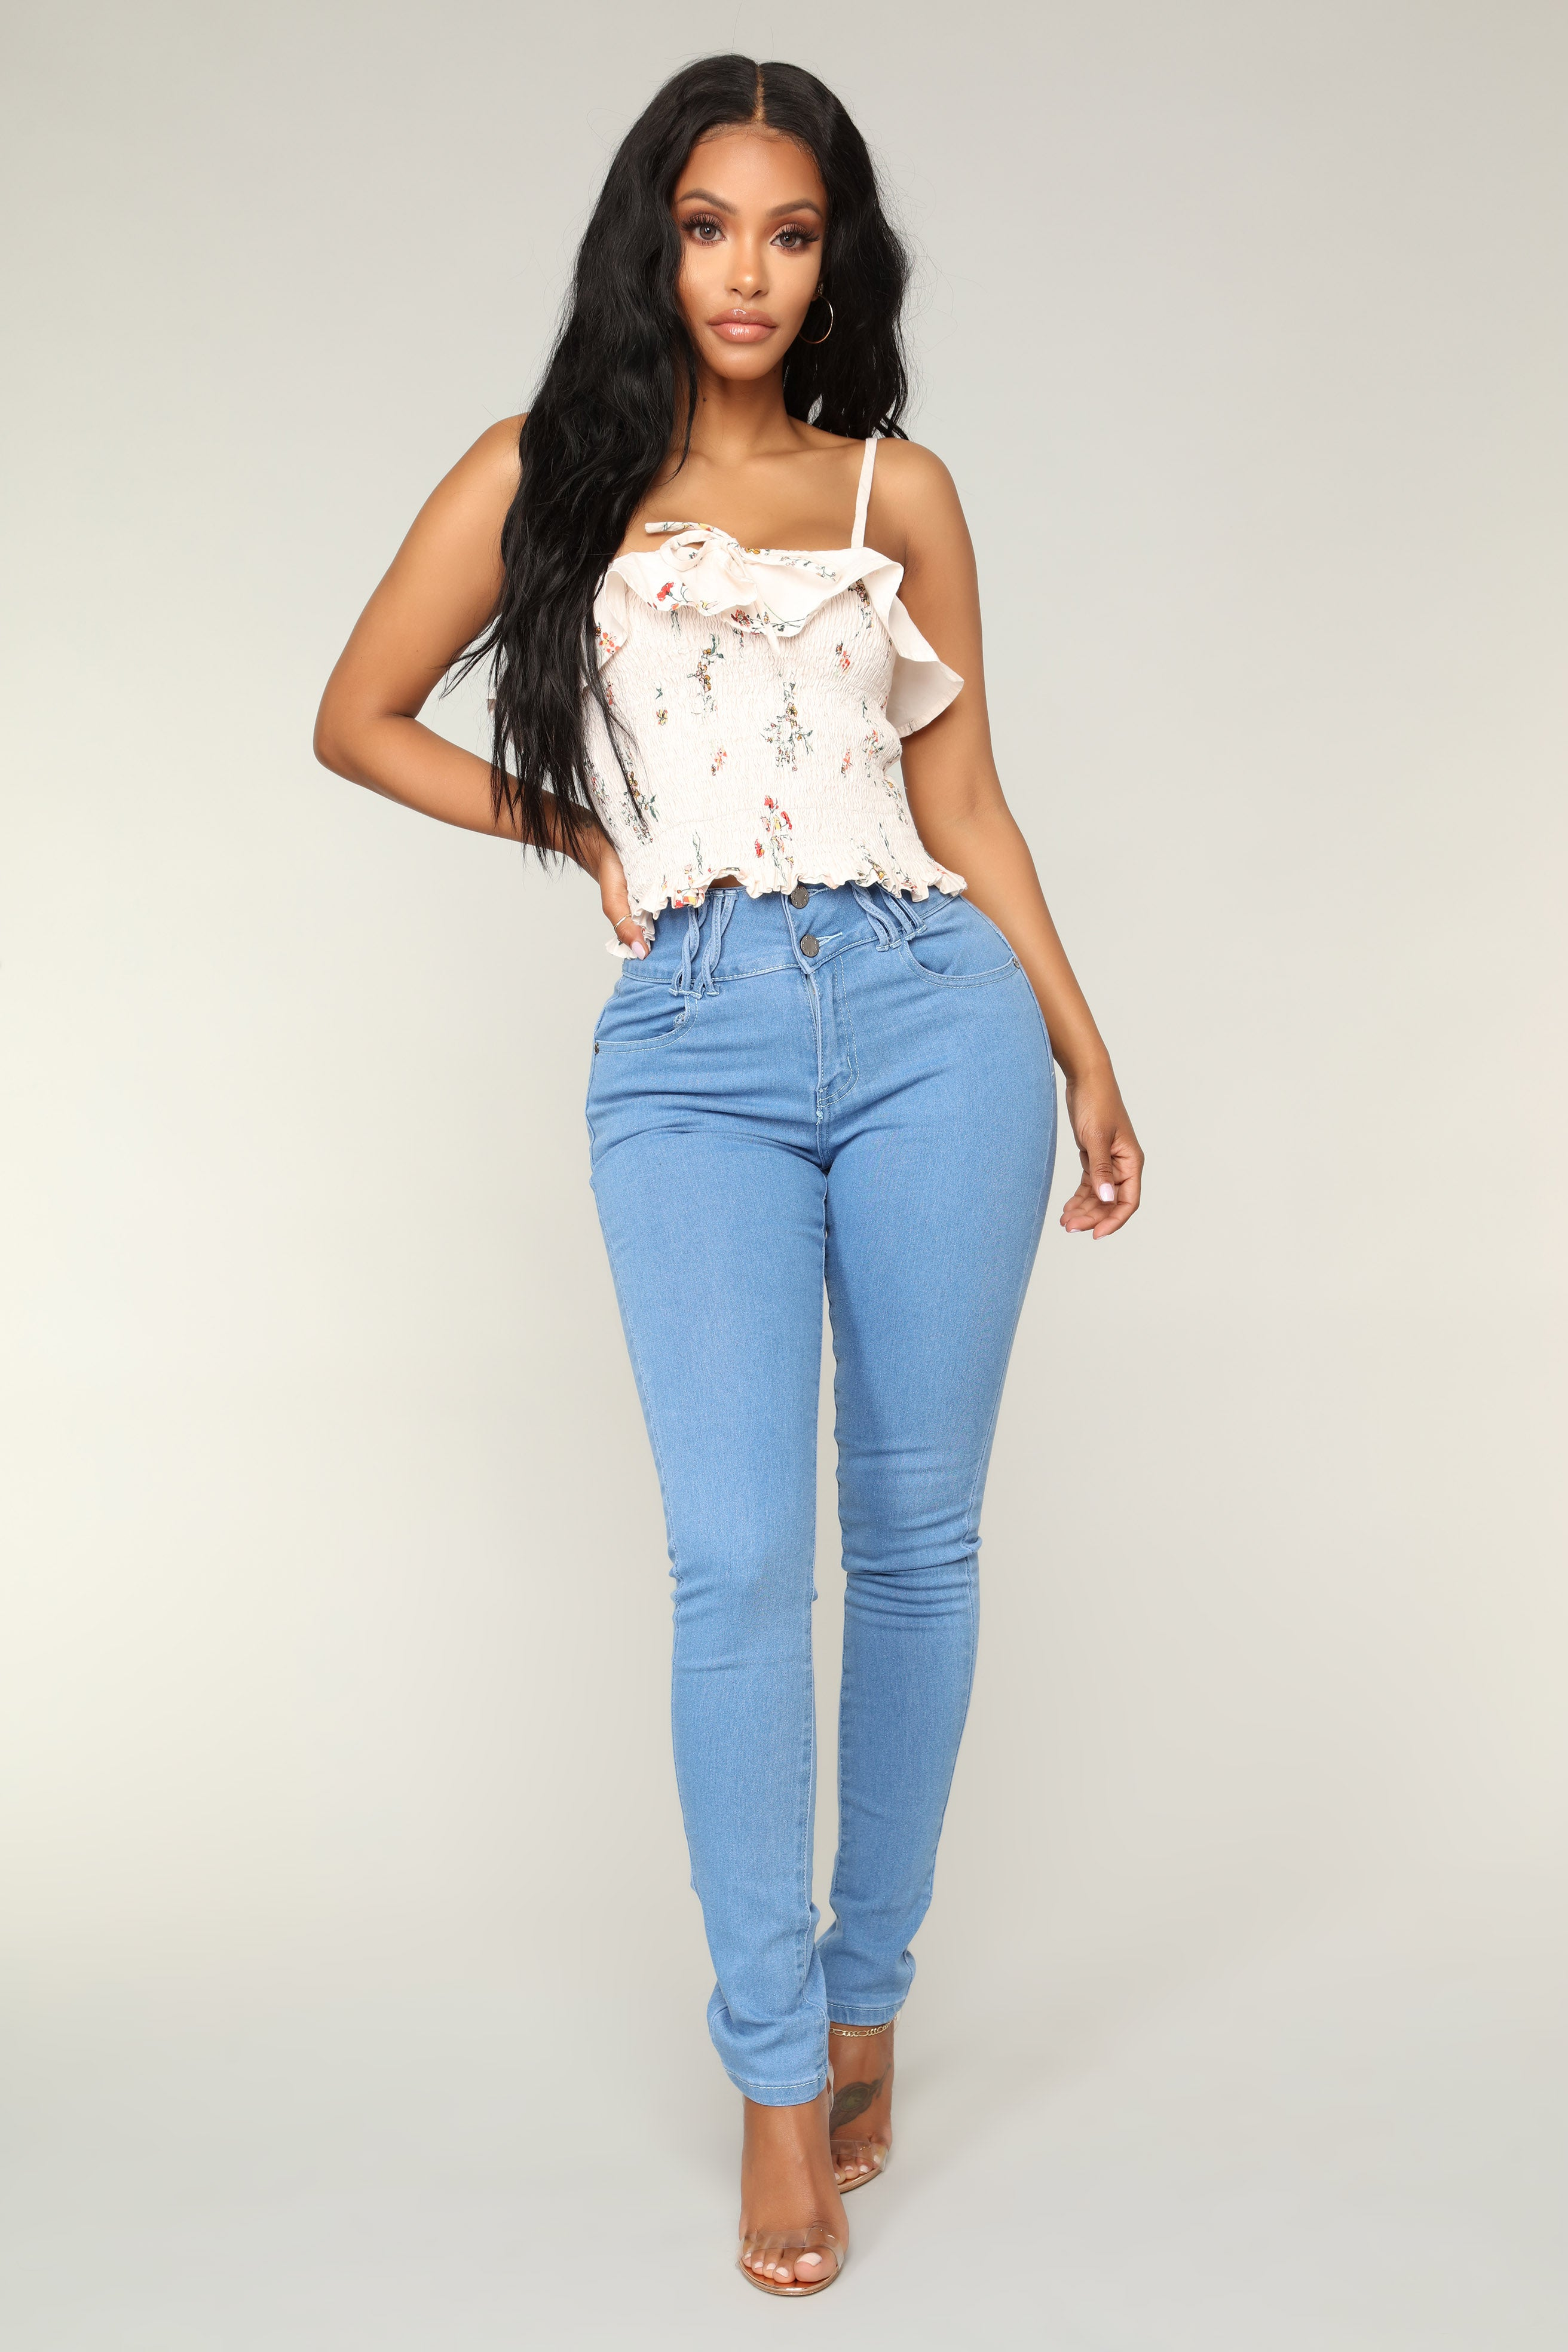 287a4429619 Hold Me Tight High Rise Skinny Jeans - Light Blue Wash